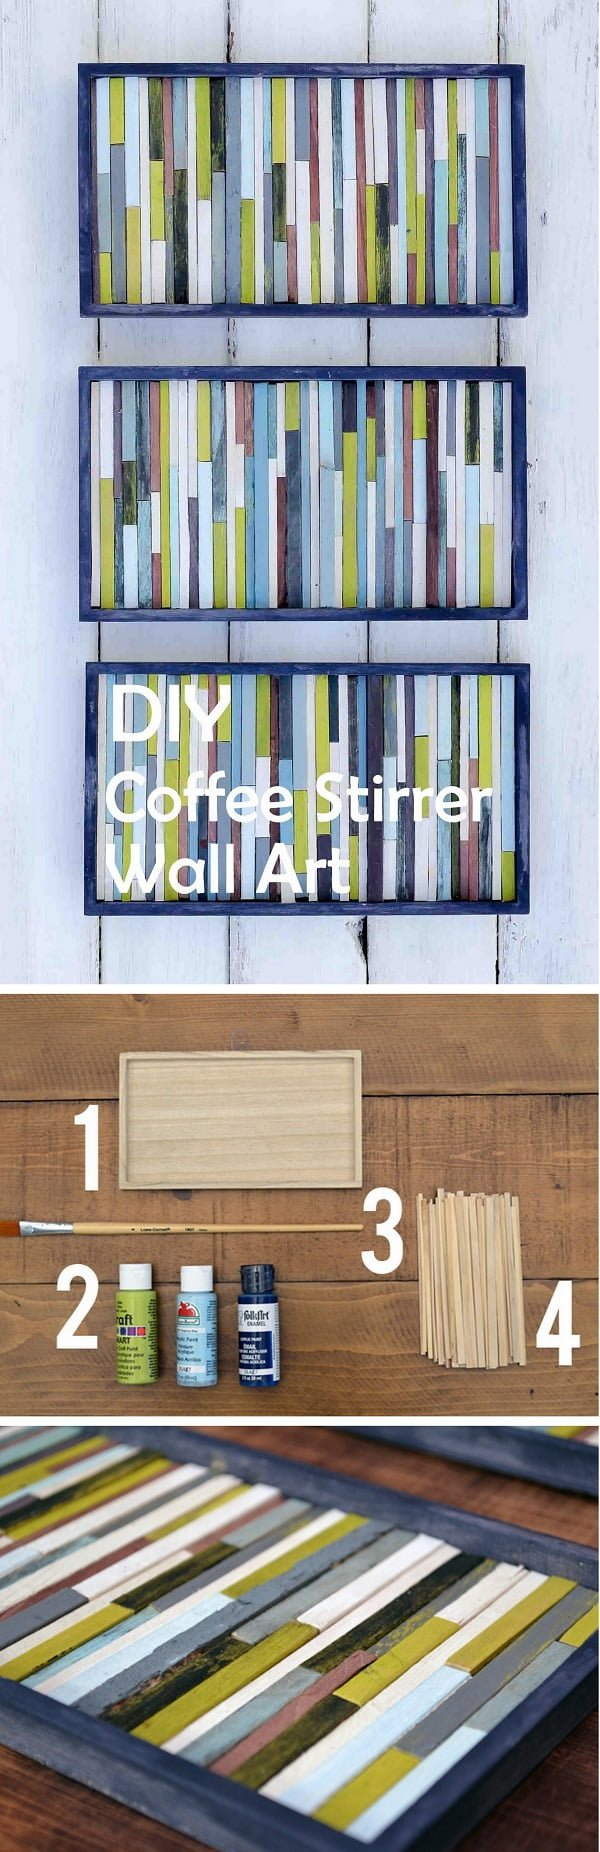 Check out this easy idea on how to make #DIY coffee stirrer wall art on a #budget #homedecor #crafts #project